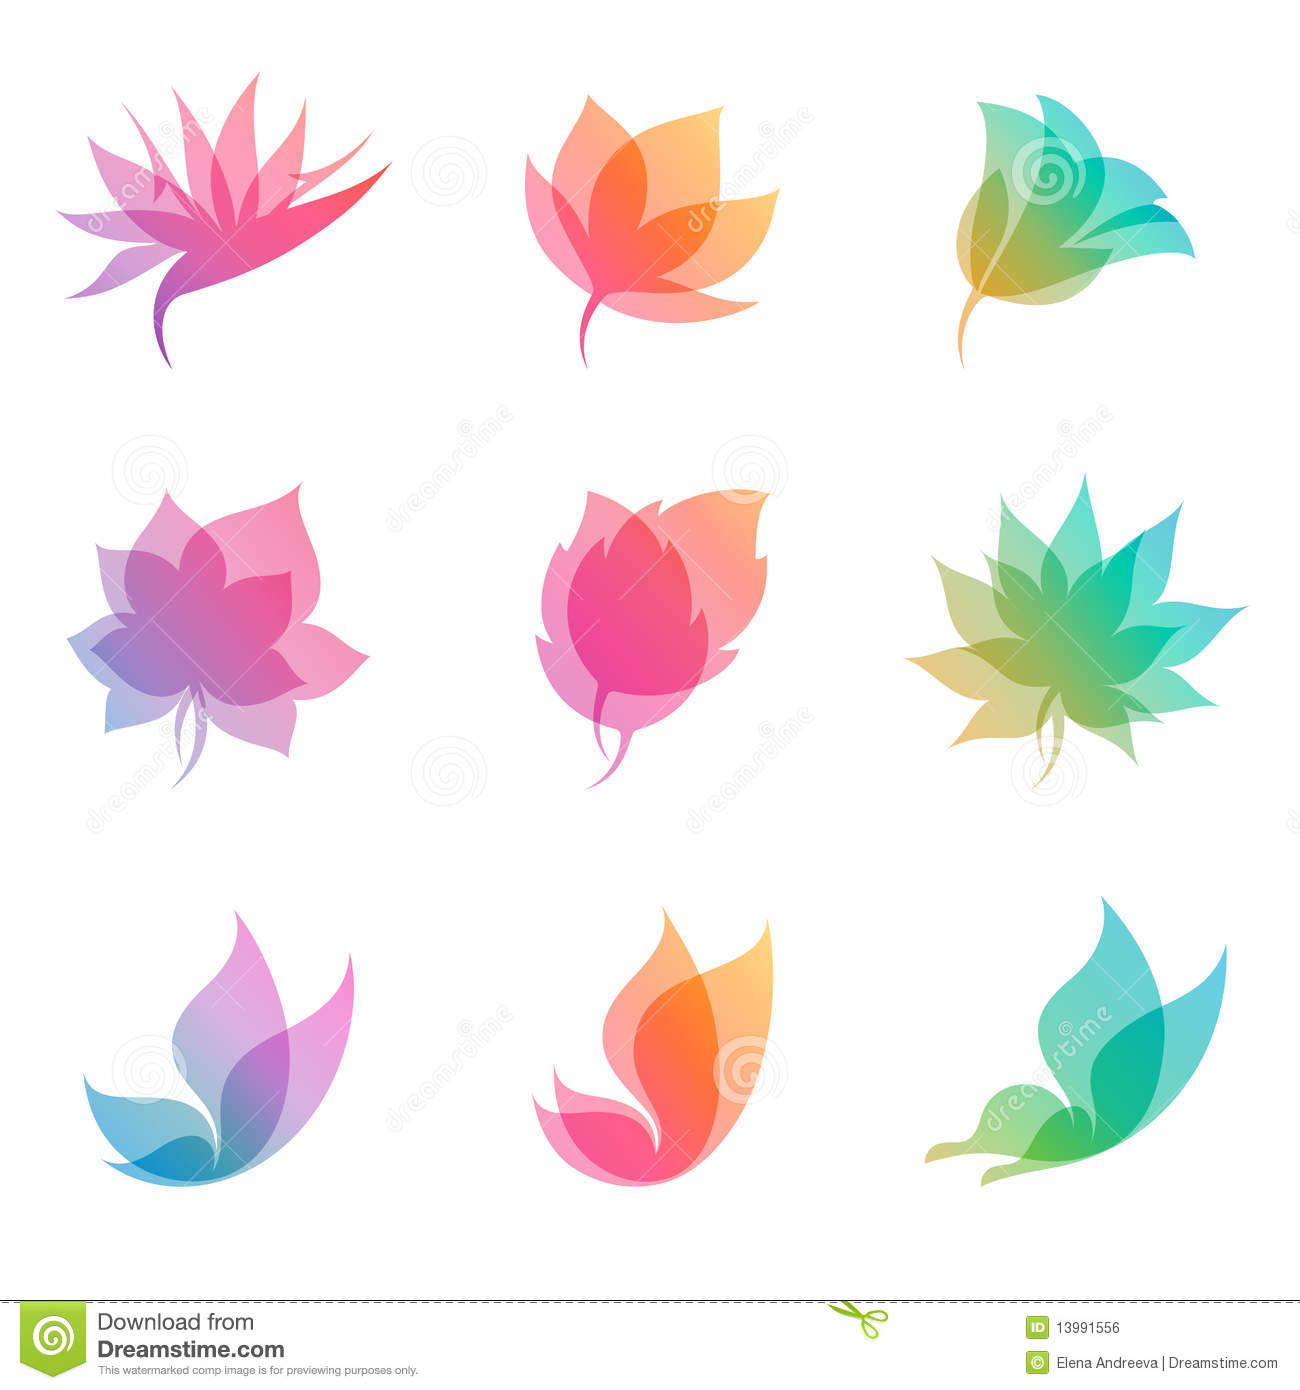 Free Vector free download vector files